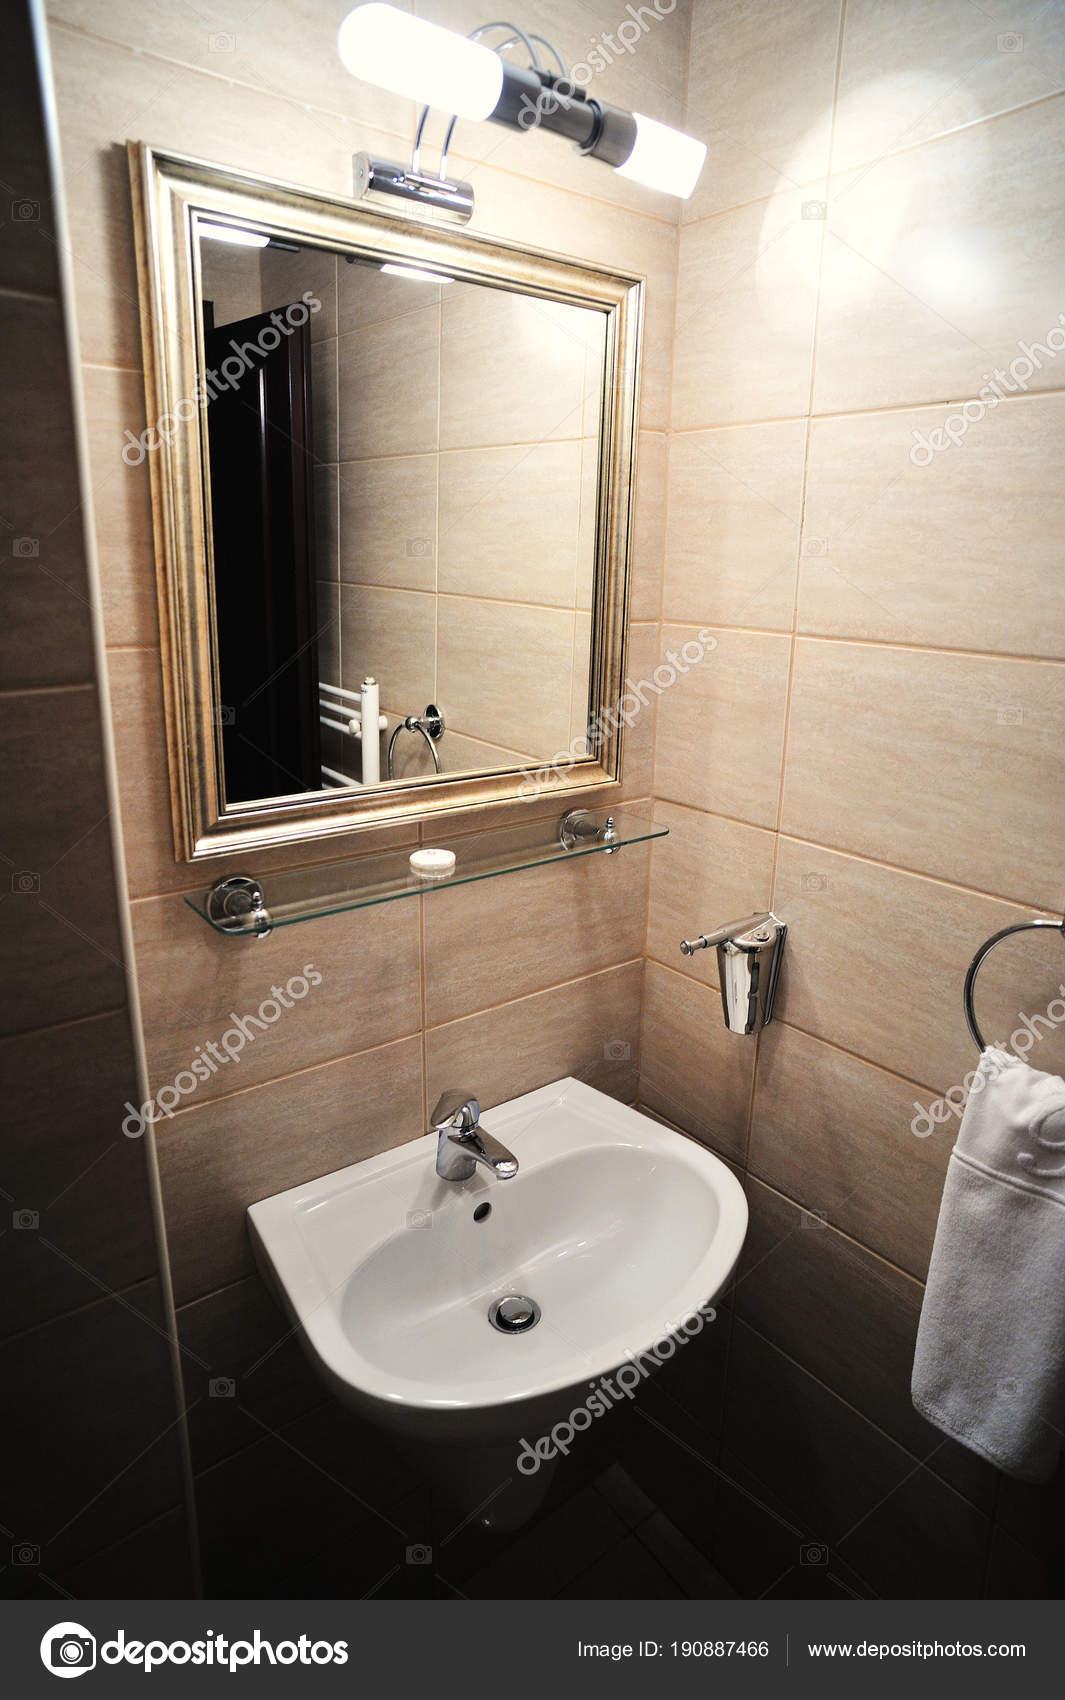 Elegant Marble Bathroom Luxury Hotel Bathroom Accessories Stock Photo C Editor77 190887466